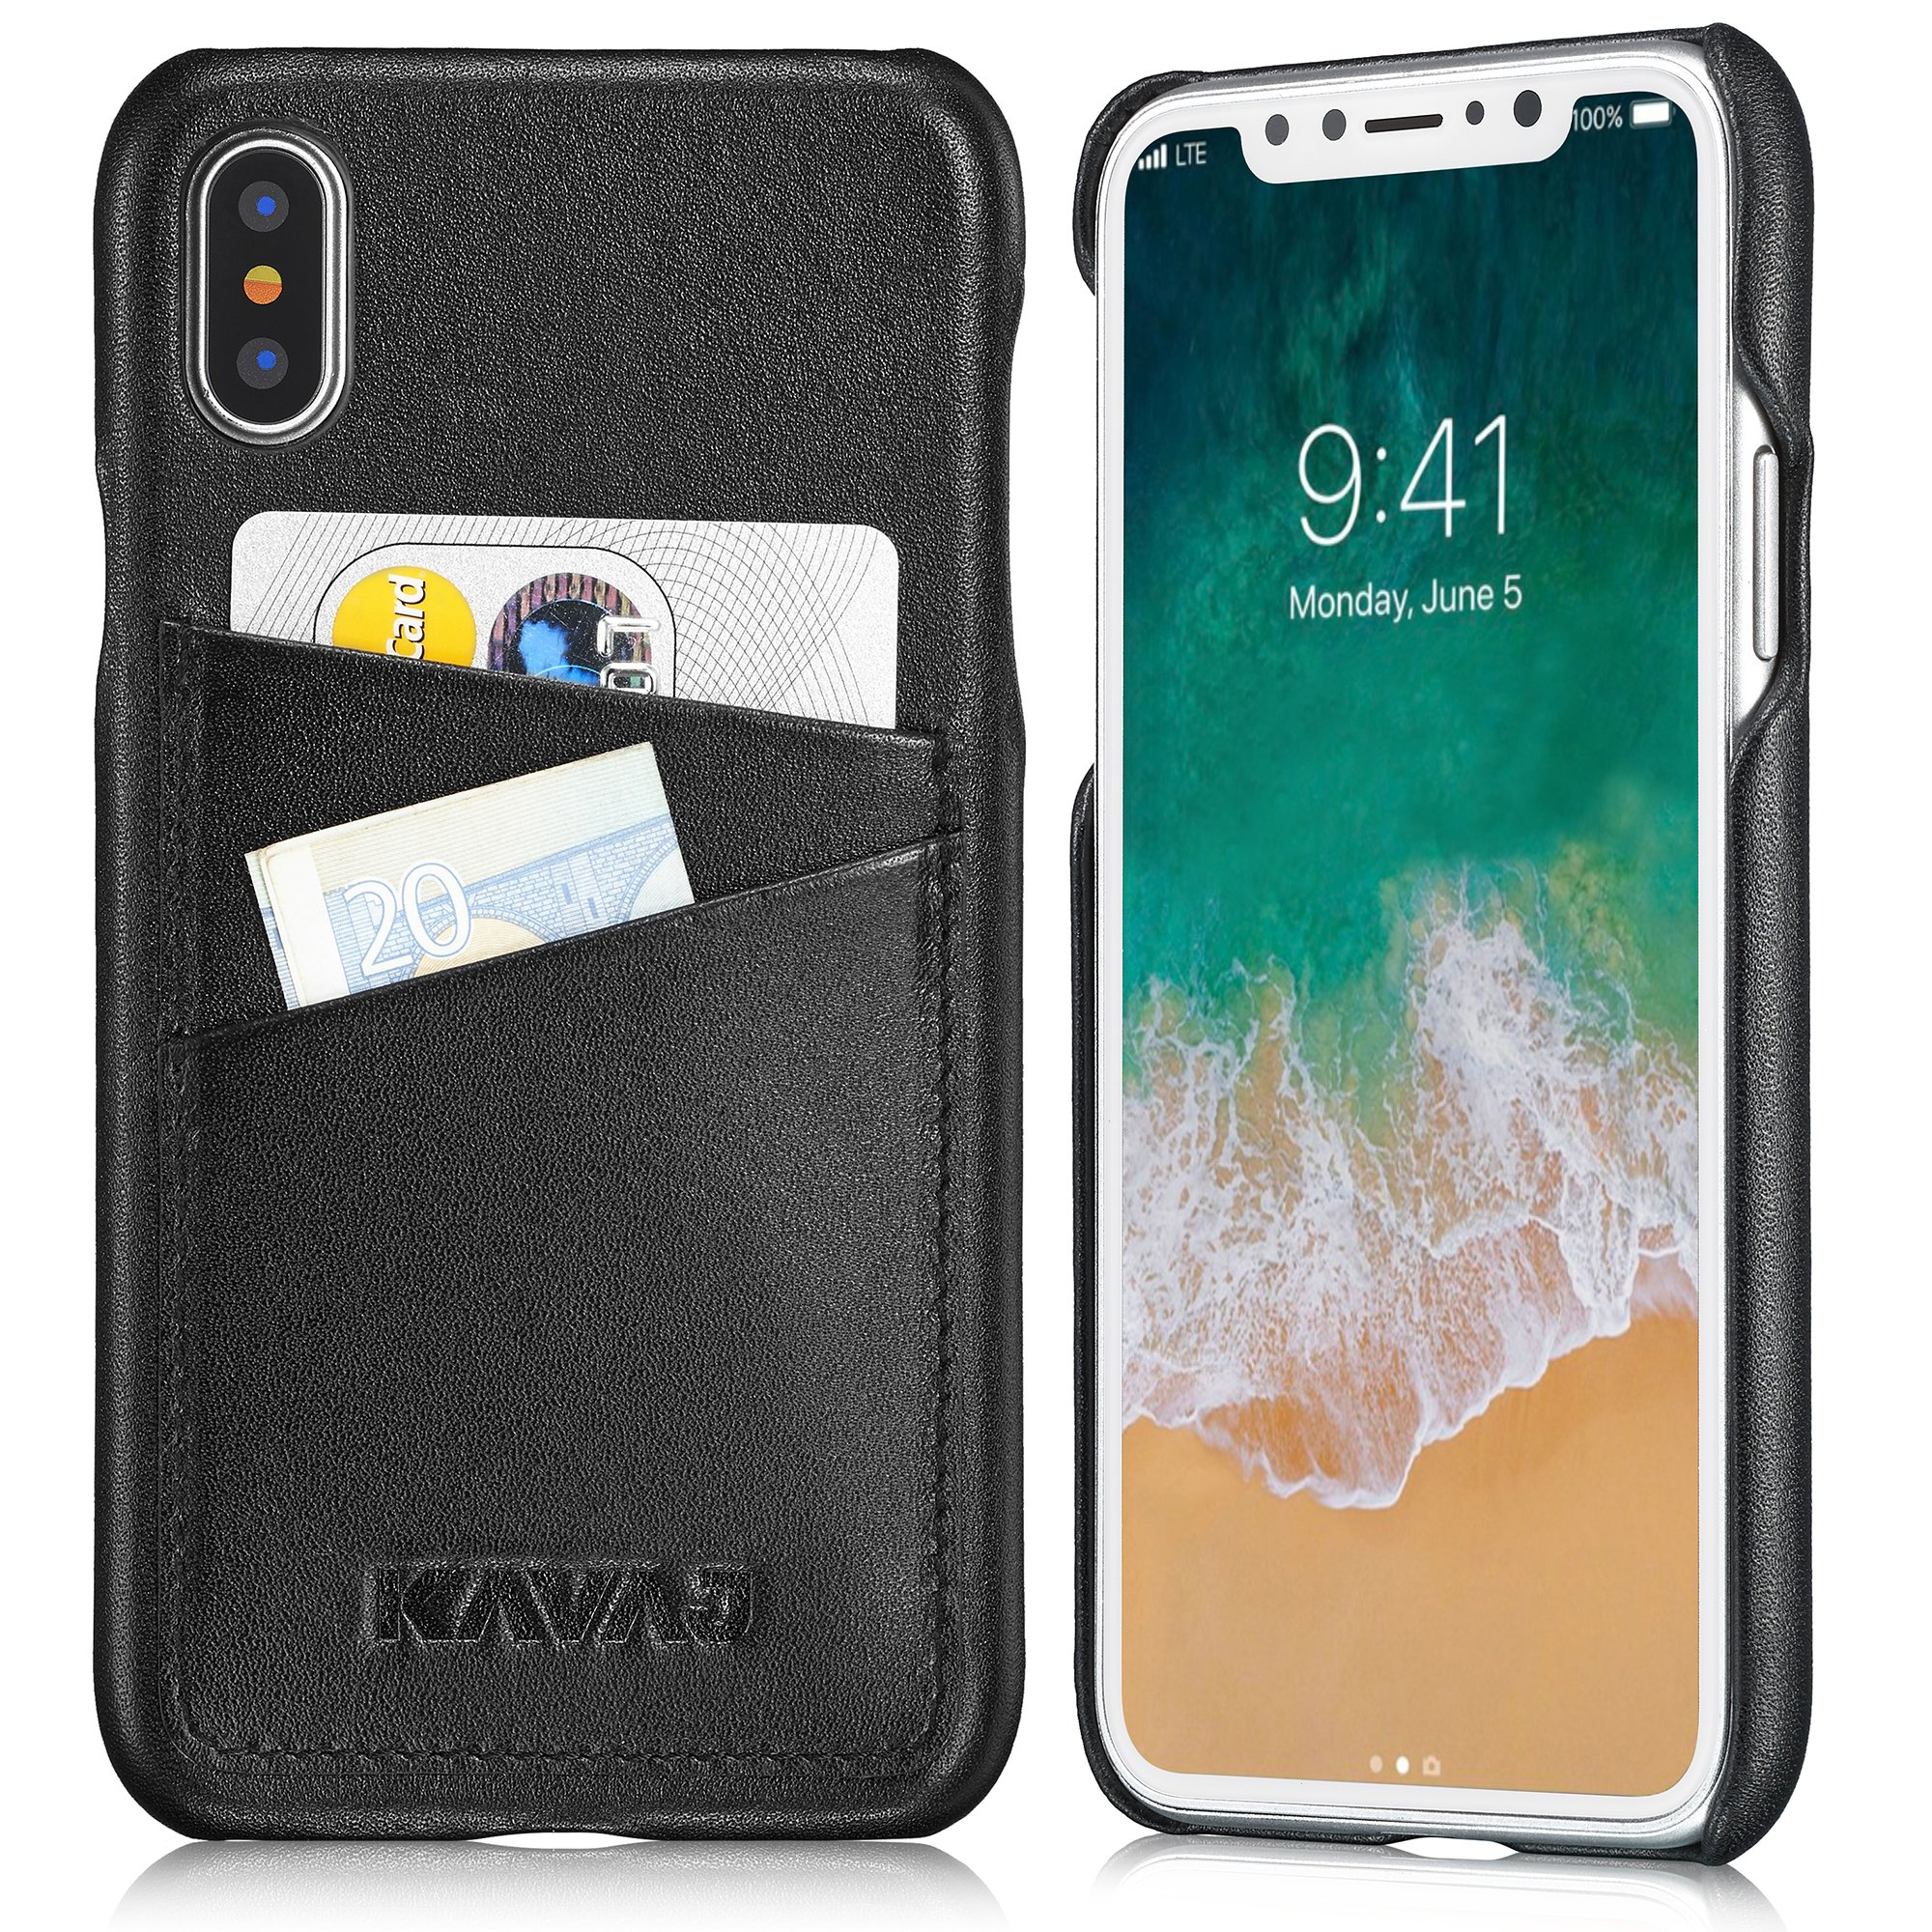 KAVAJ iPhone X Case Leather Tokyo Black, Supports Wireless Charging (Qi), Slim-Fit Genuine Leather iPhone X Wallet Case Leather Bumper Case With Business Card Holder Cover for iPhoneX